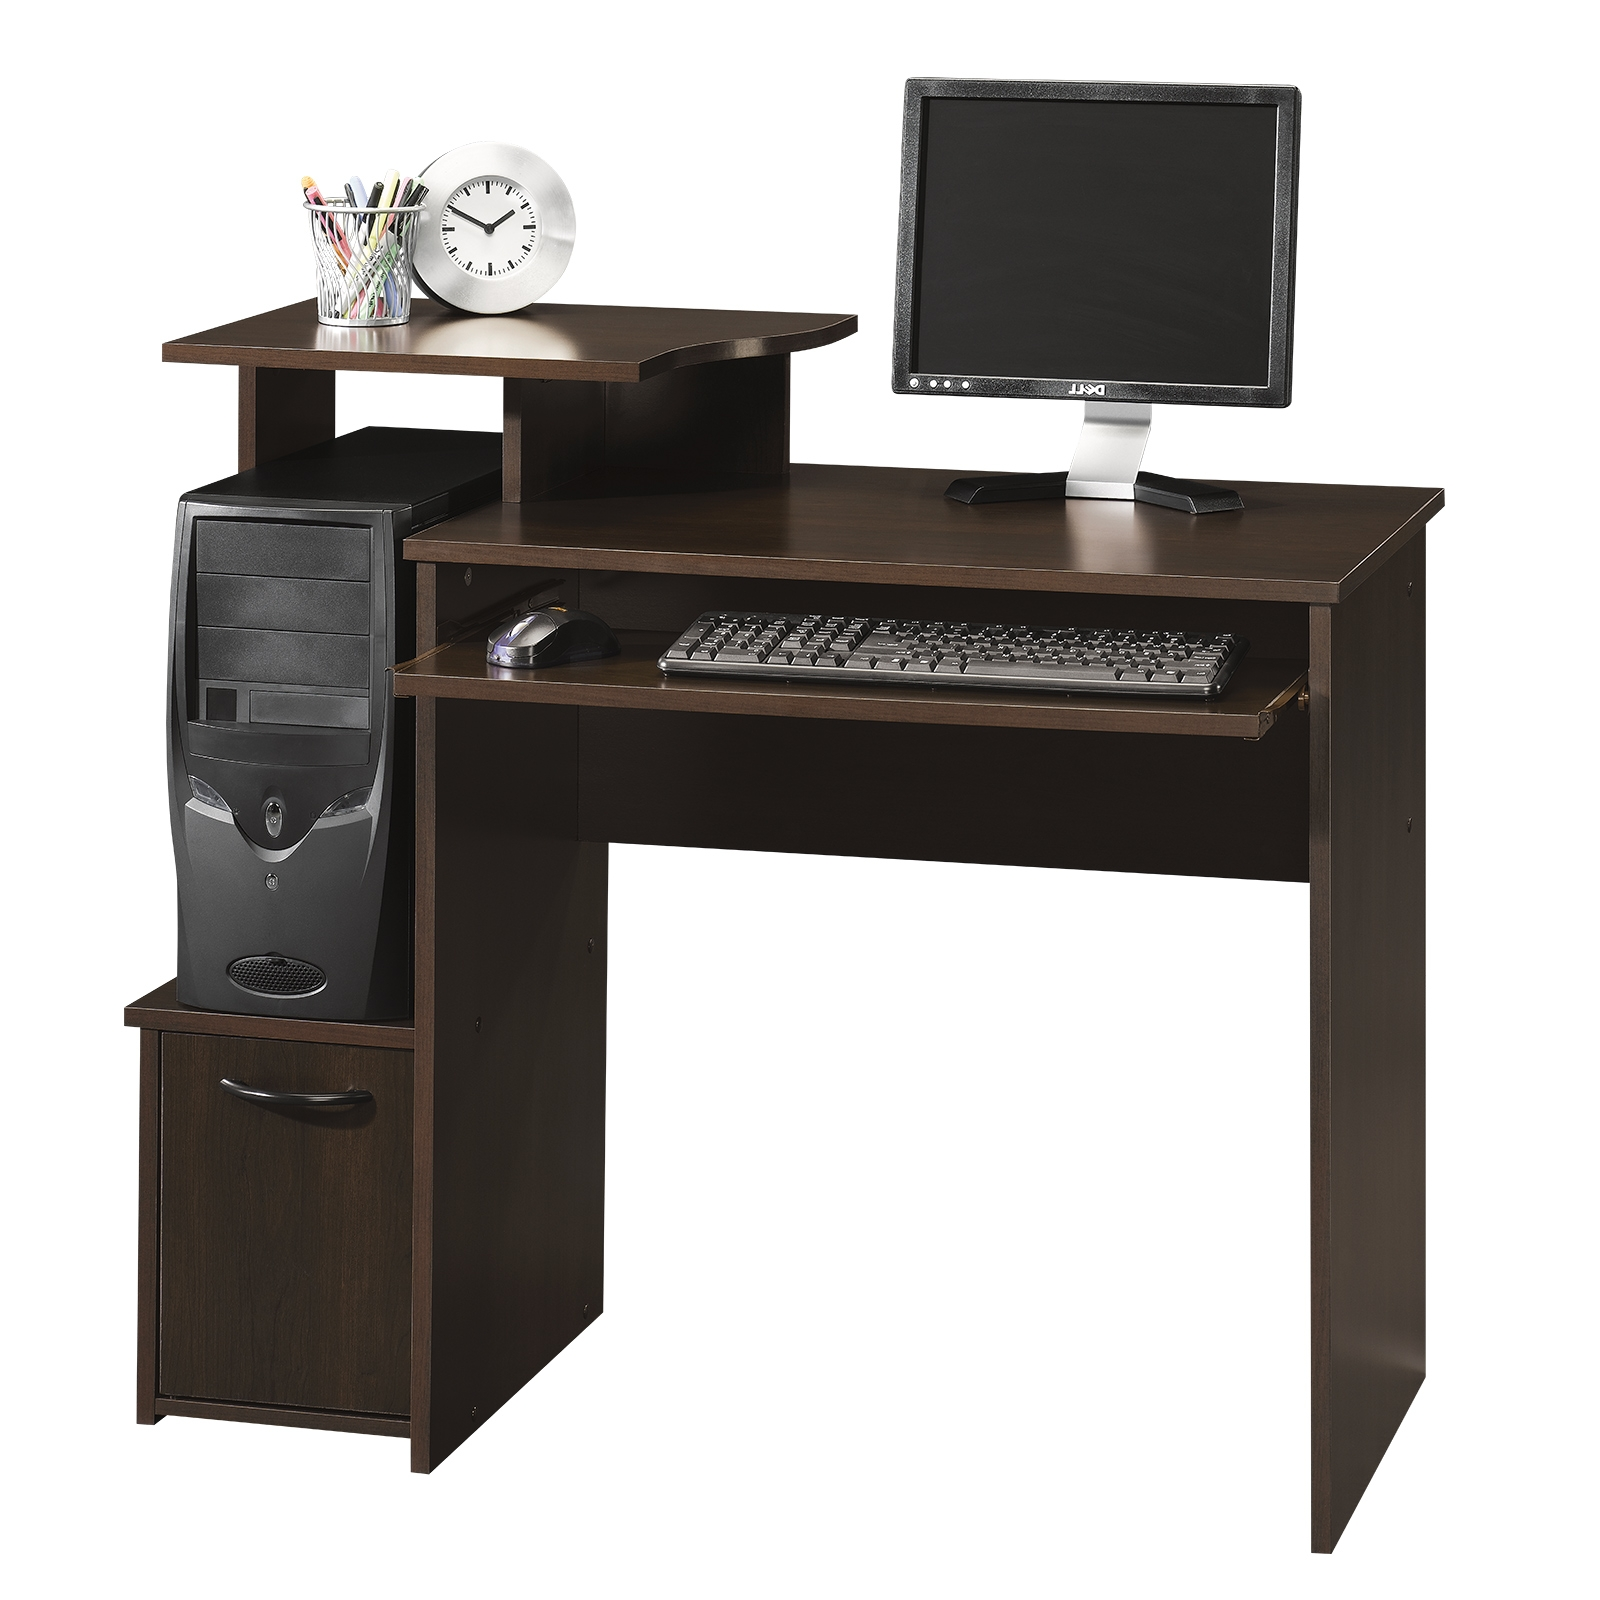 Sauder Intended For Latest Assembled Computer Desks (View 18 of 20)